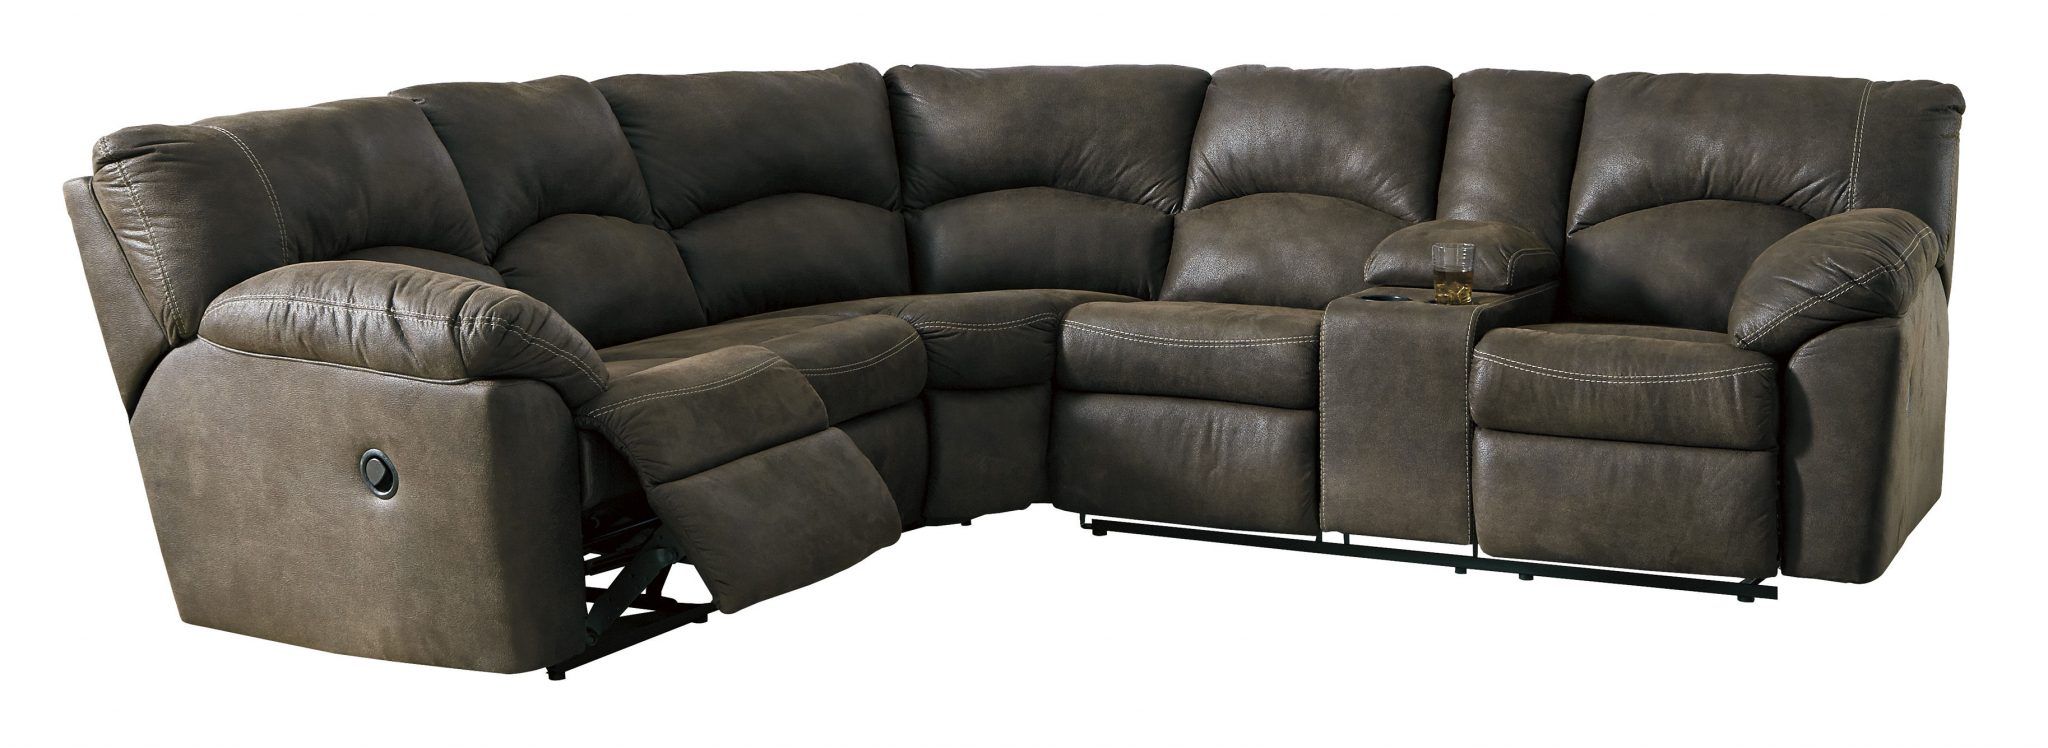 a light gray sectional